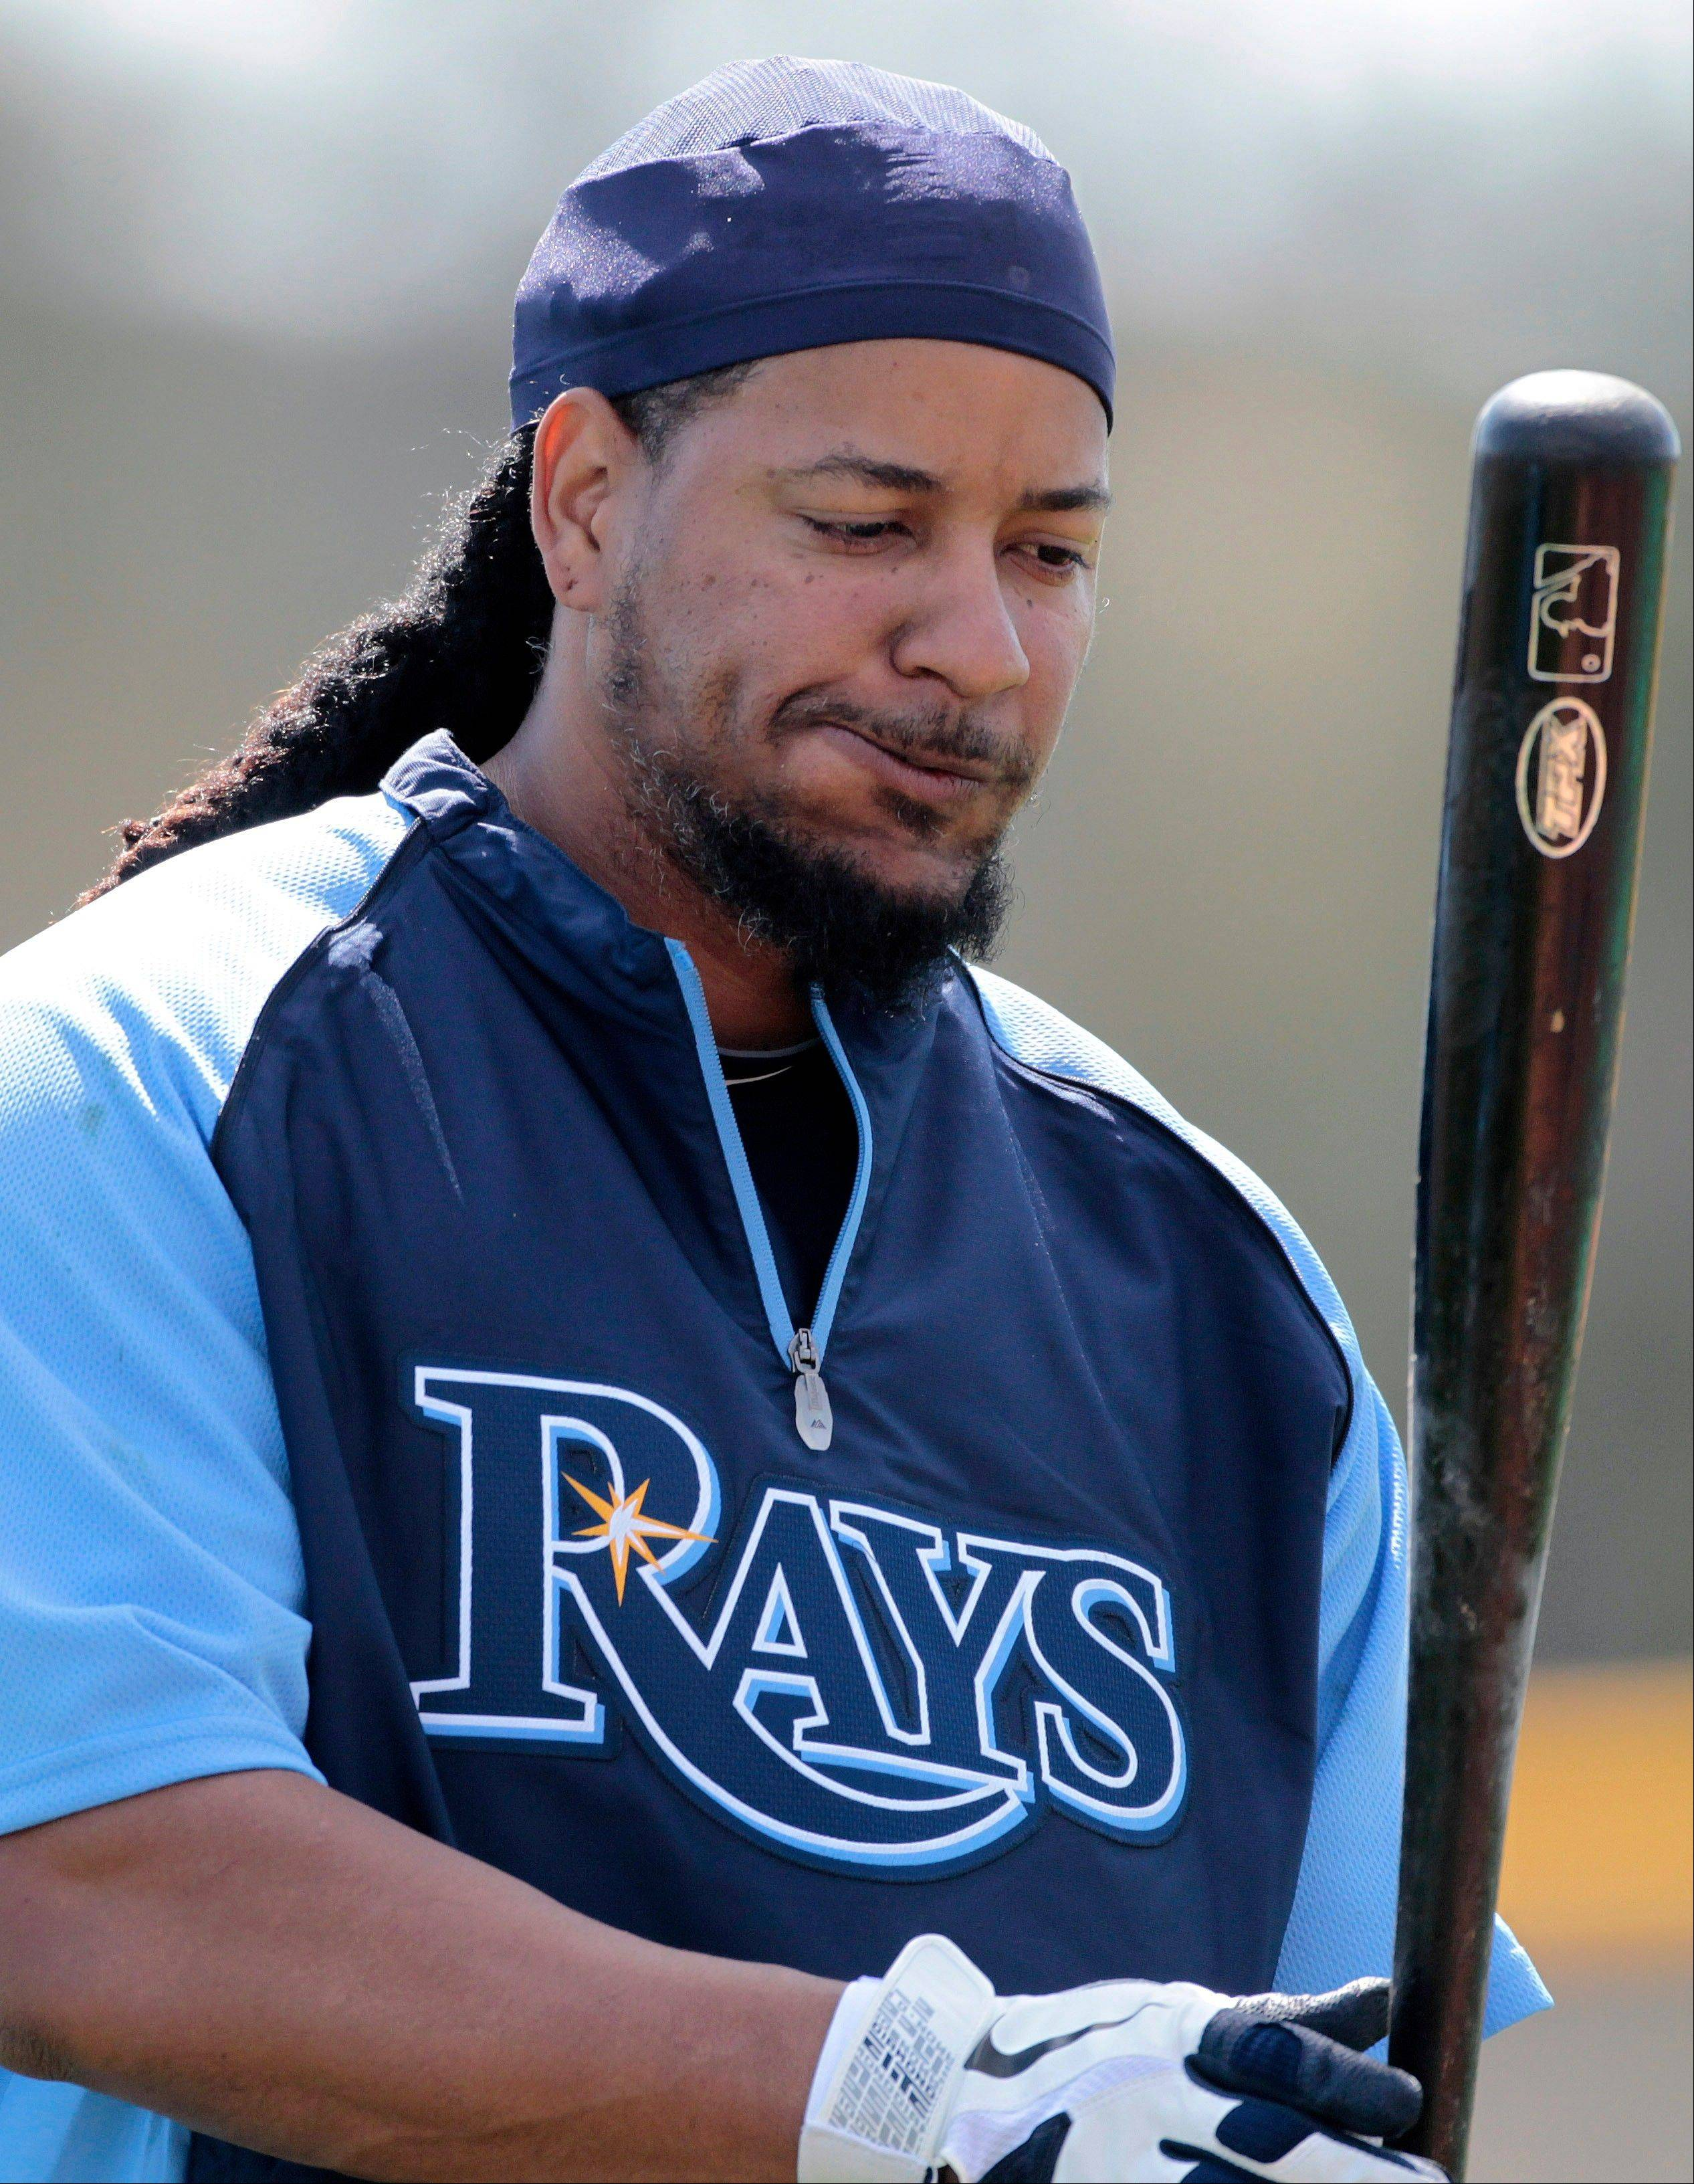 A person familiar with the situation says the substance that caused Manny Ramirez to test positive for a banned substance last year was testosterone. The administrator of baseball�s drug program issued his annual report Friday. The document lists the substances that resulted in seven positive tests for performance-enhancing drugs that led to discipline.